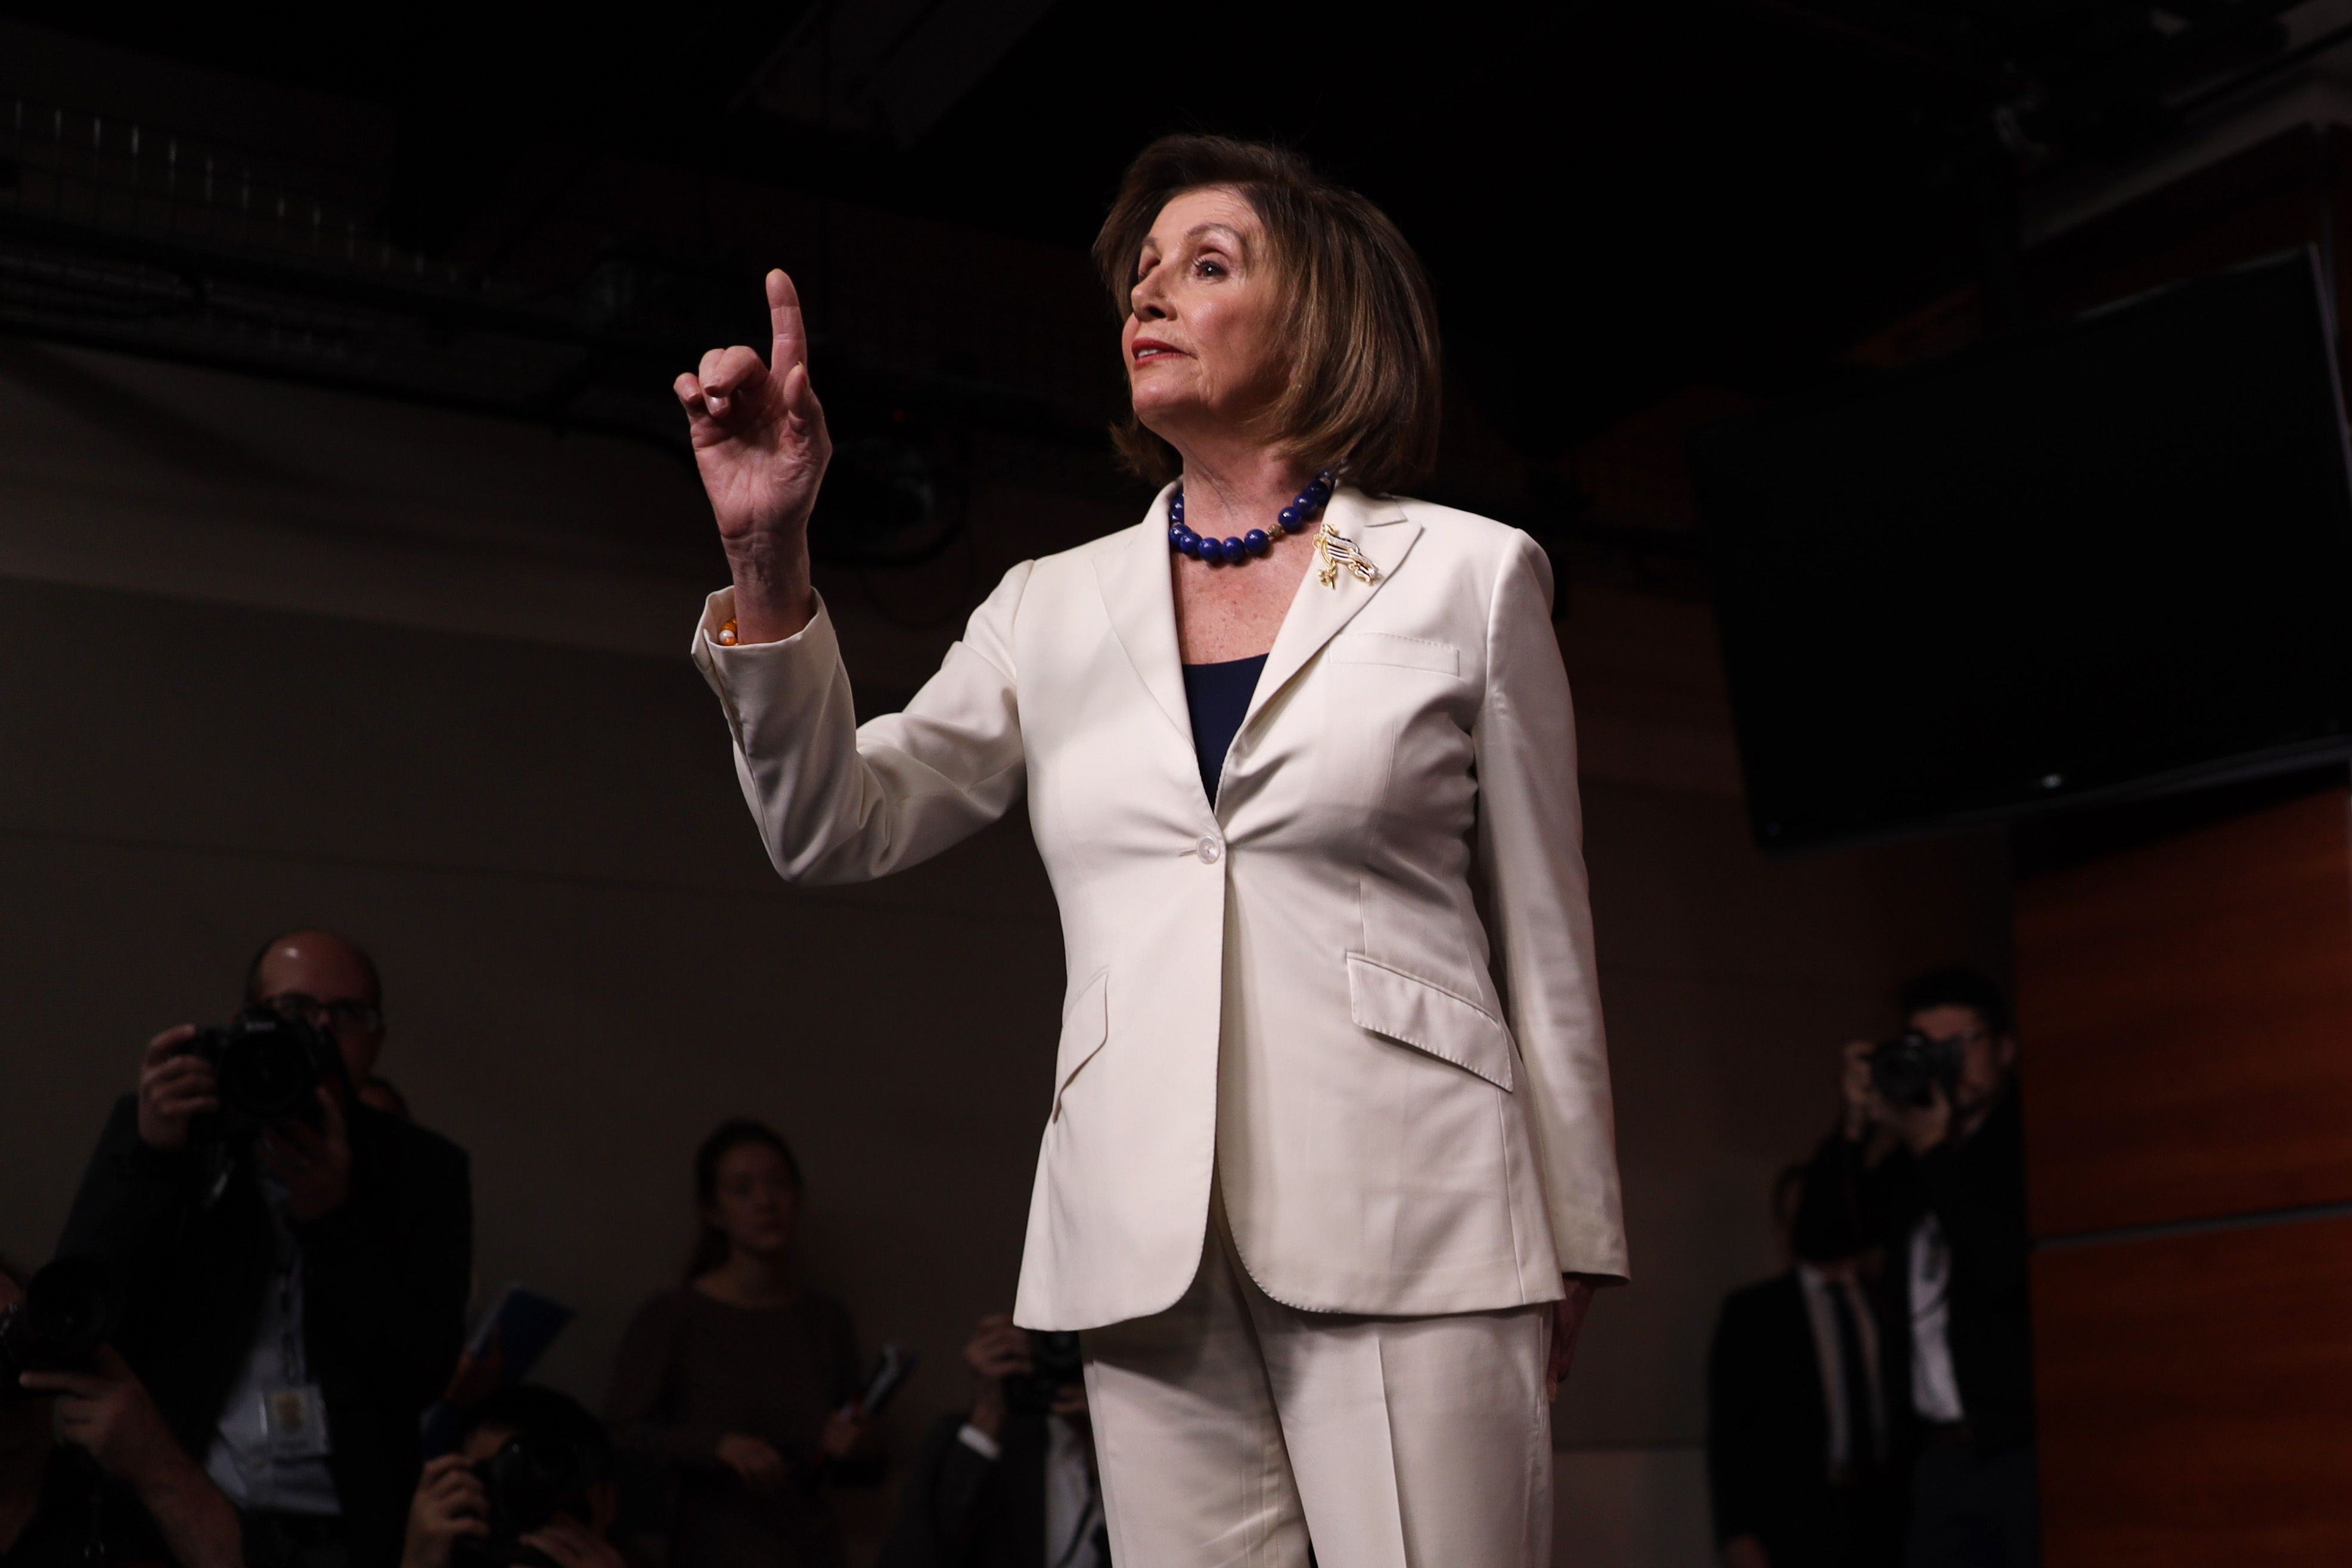 Nancy Pelosi Lays a Smackdown with the Power of the Holy Spirit